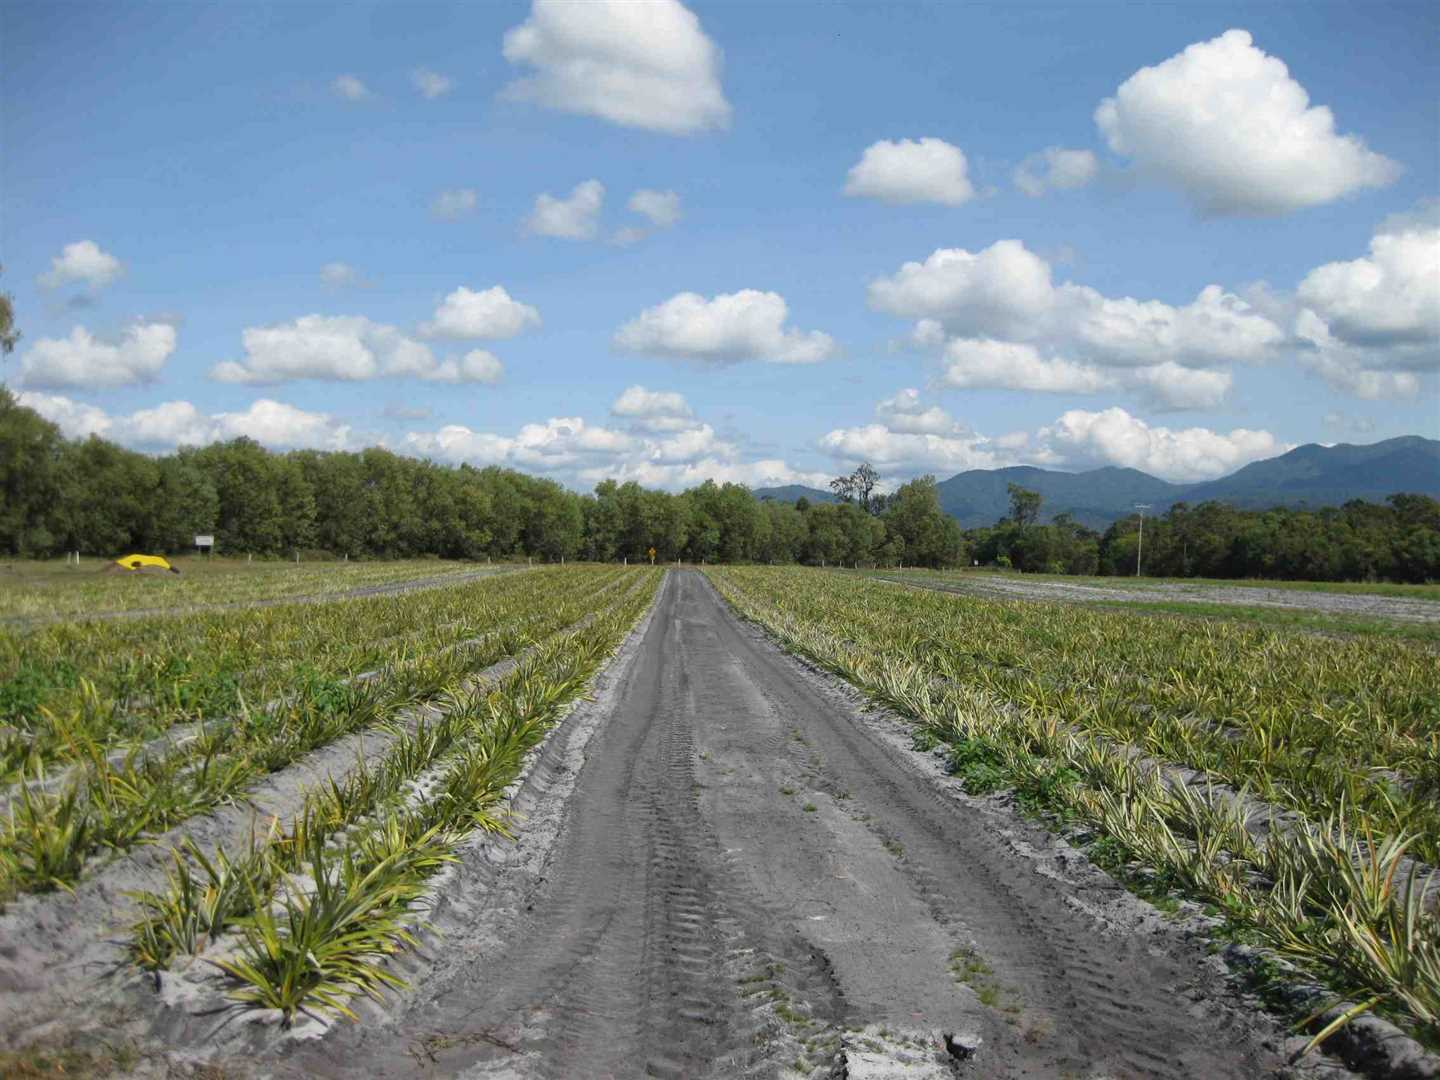 View of part of property, showing part of leased Organic pineapples being grown by the Lessee, photo 1